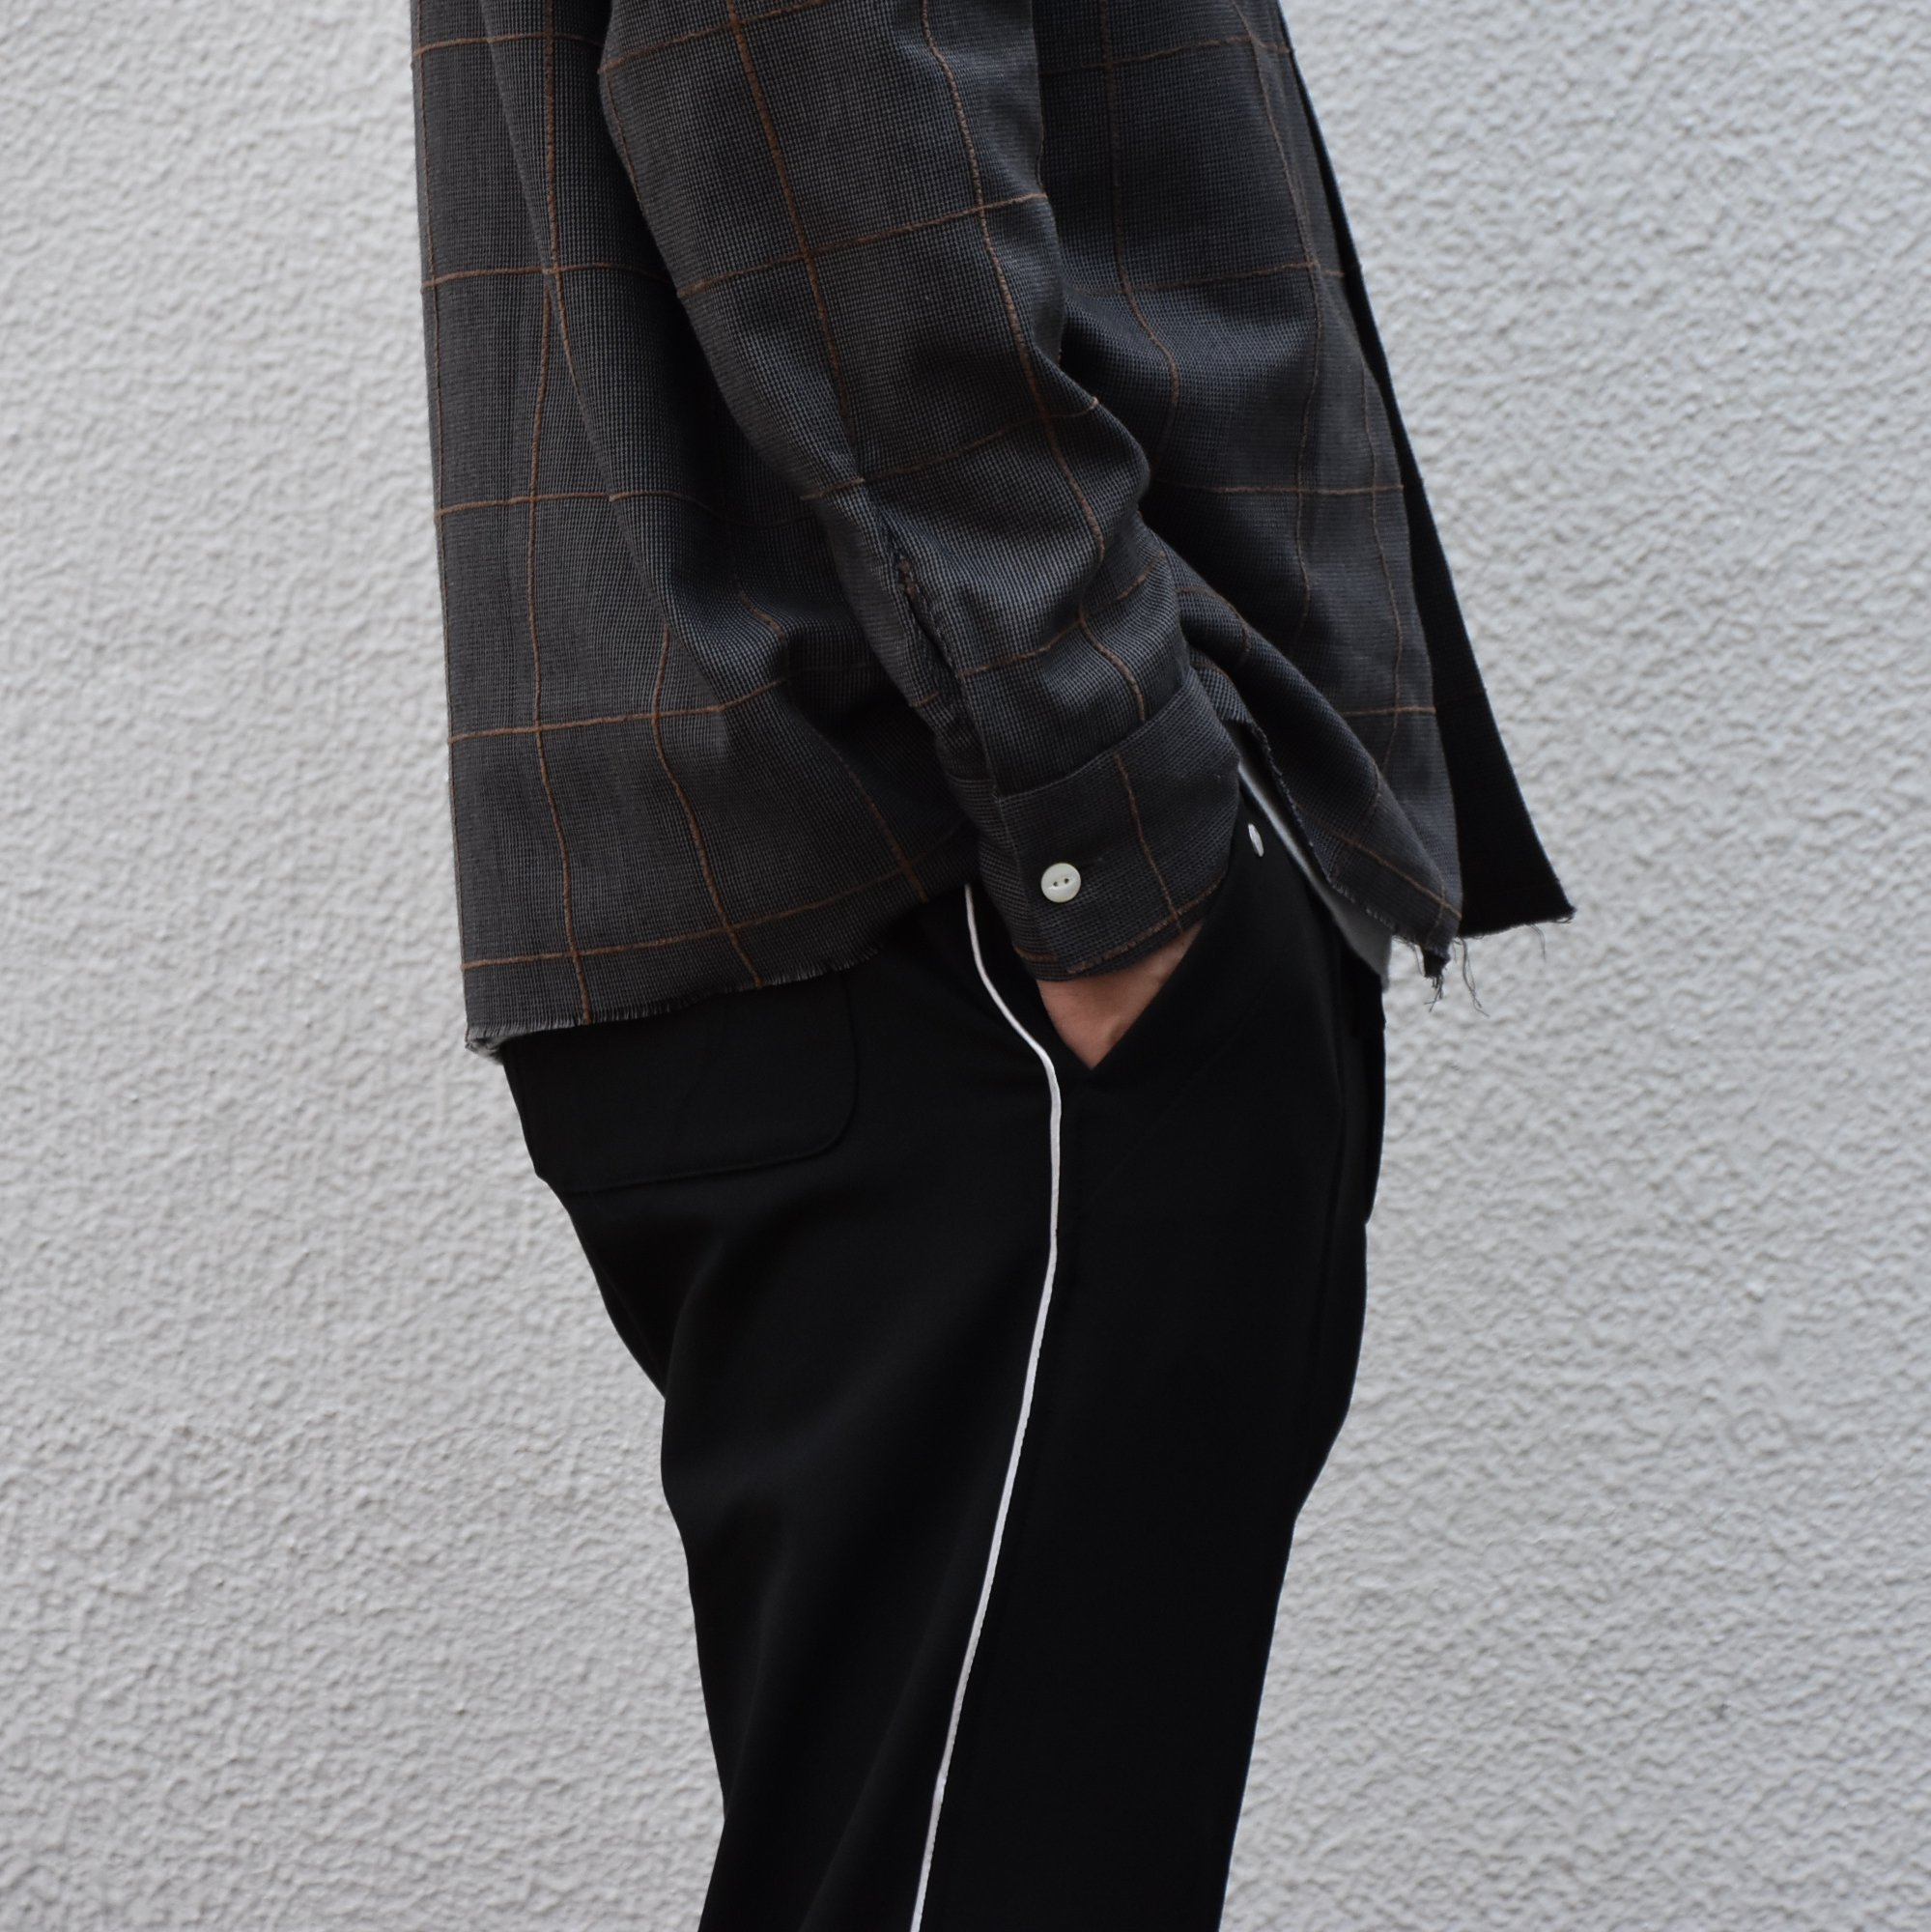 【2020】NEEDLES(ニードルス) Piping cowboy pants -BLACK- #HM-135(3)